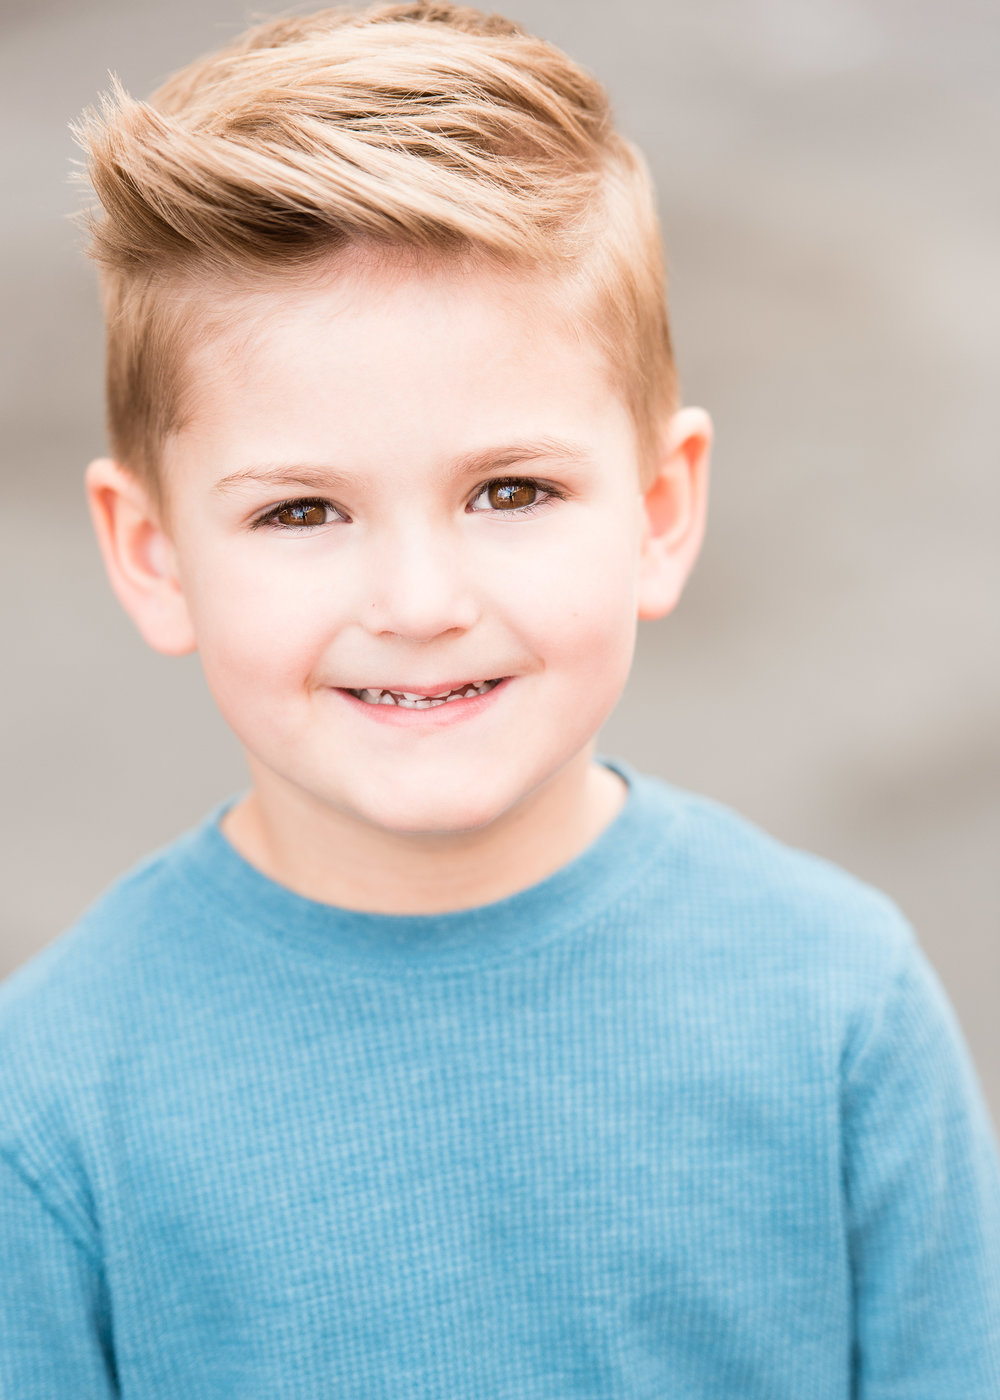 ChildrenHeadshots051.jpg